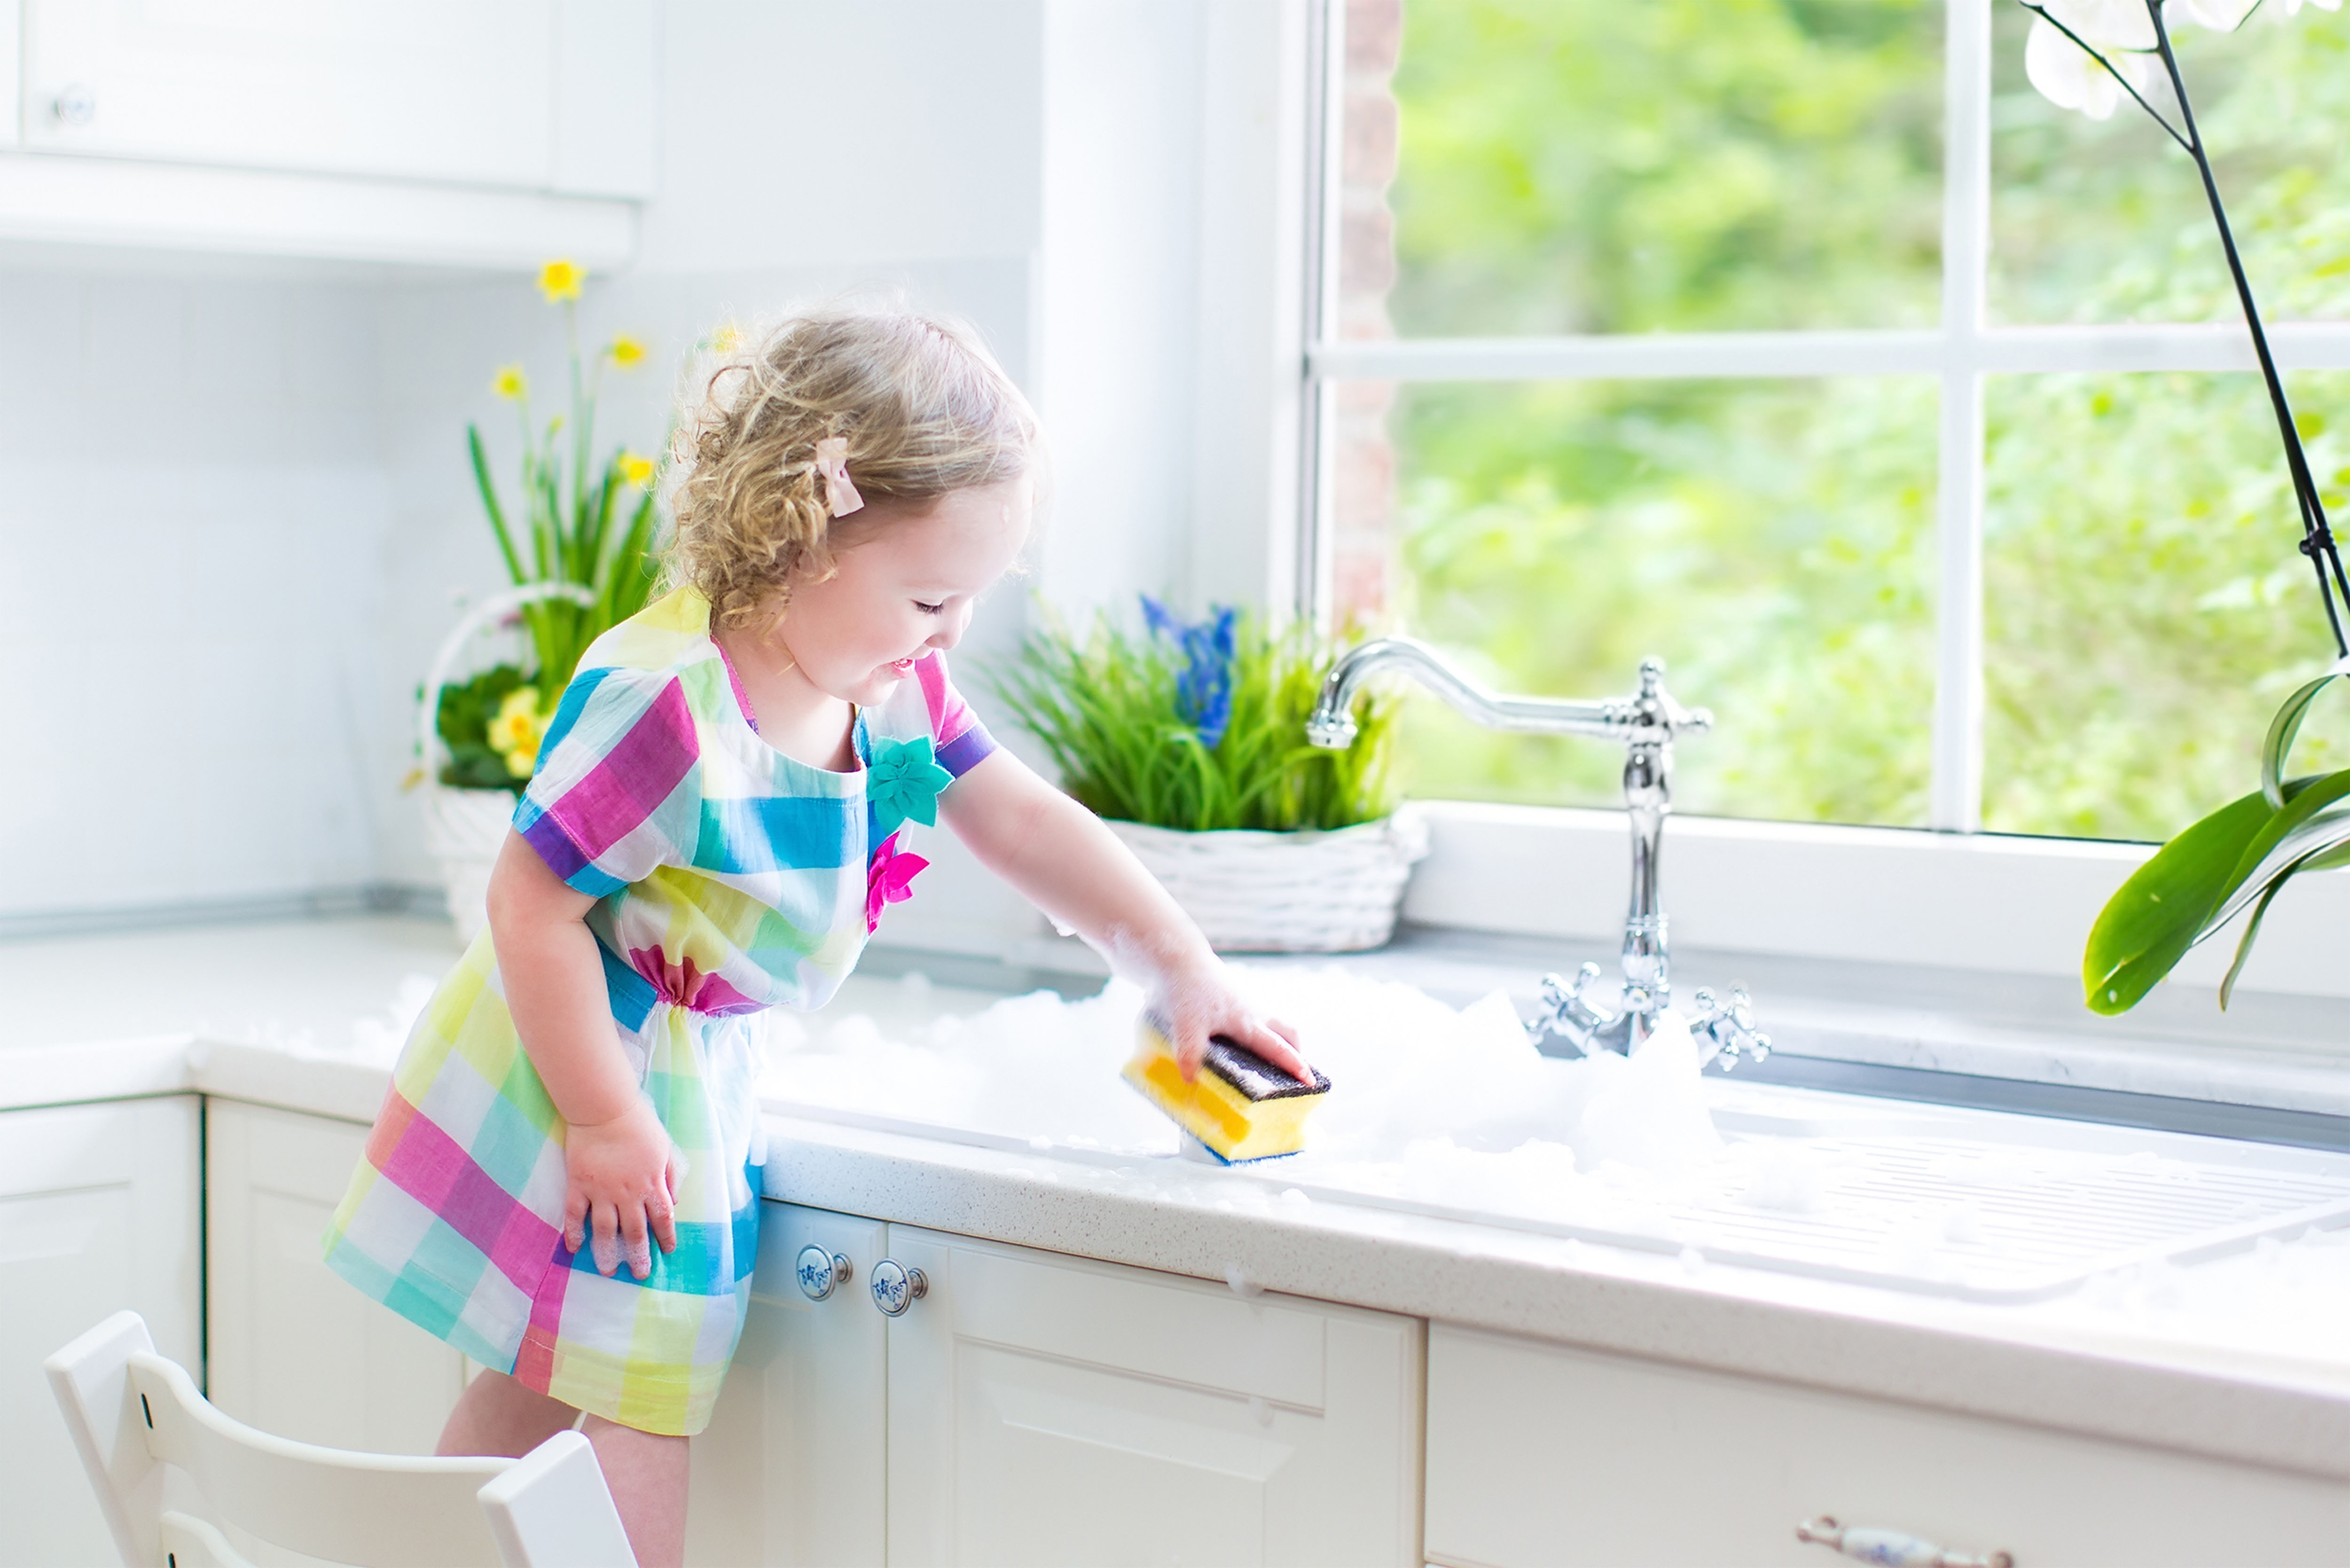 Cleaning the kitchen sink naturally